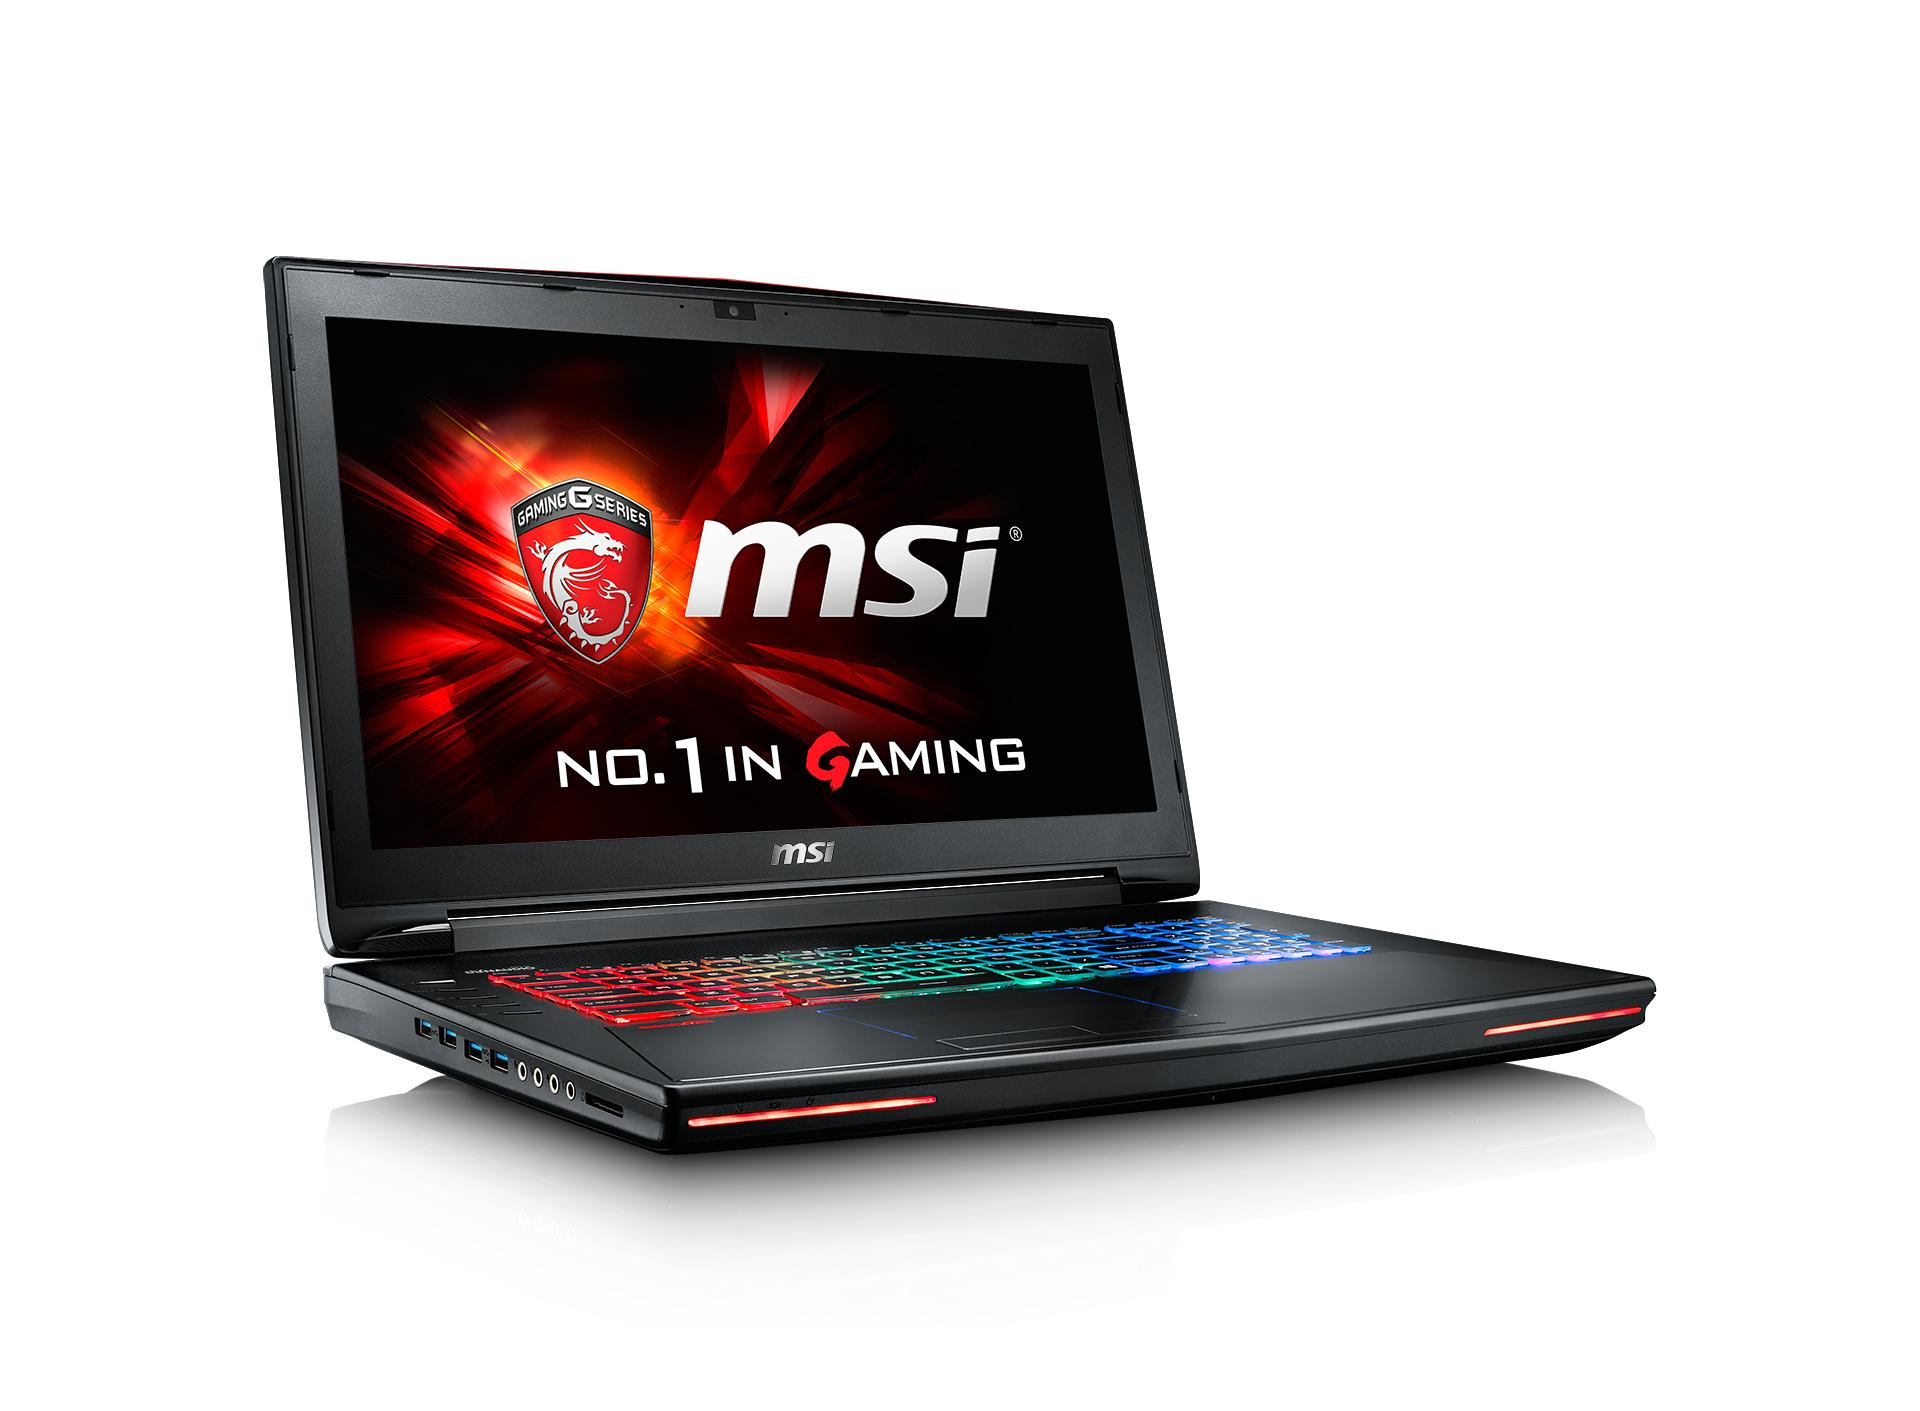 MSI GT72 6QE DOMINATOR PRO G KILLER LANWLAN DRIVERS DOWNLOAD FREE